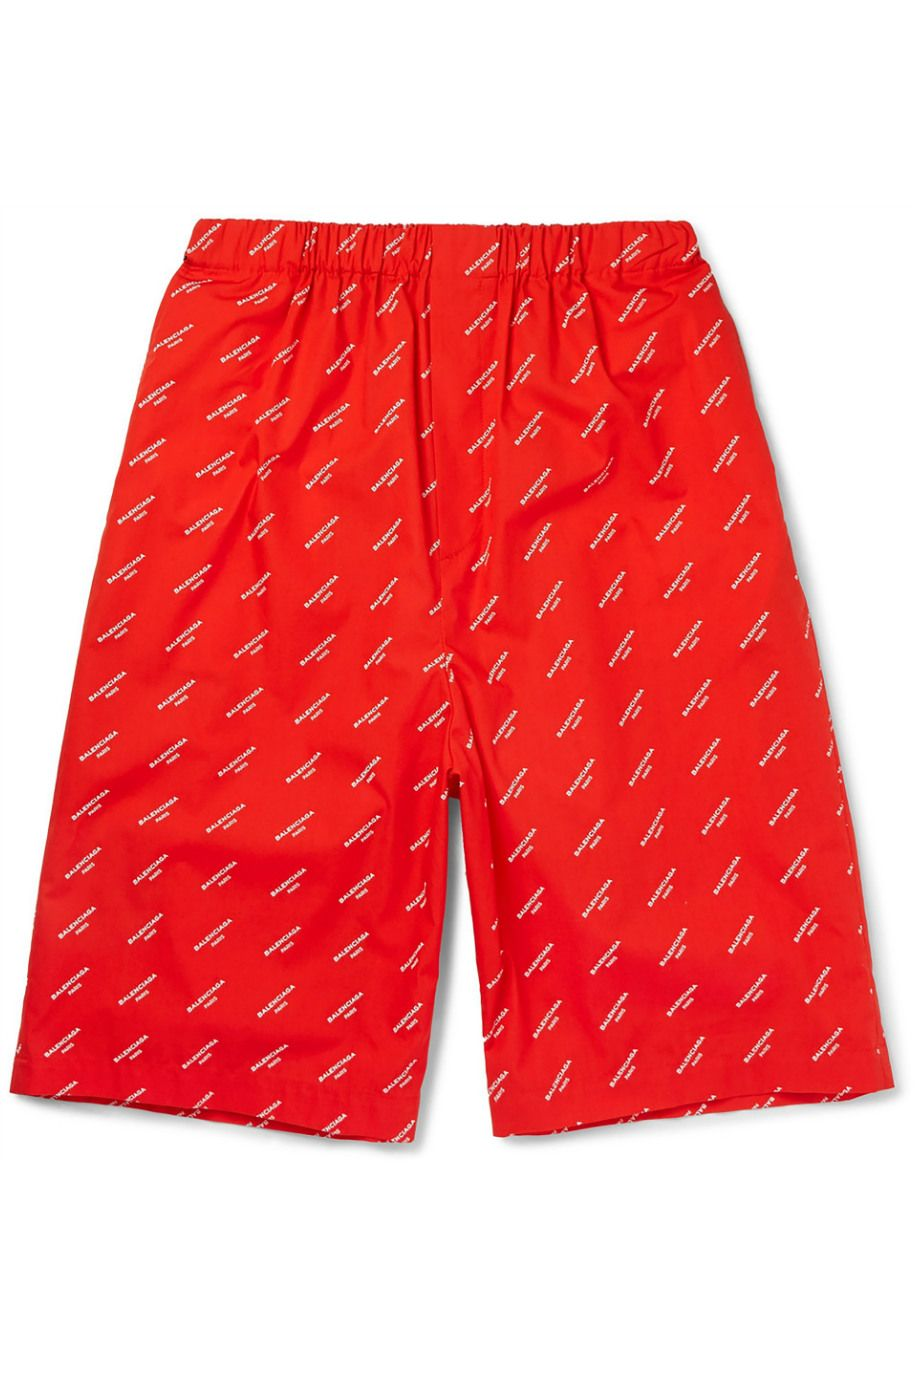 MR PORTER X BALENCIAGA Printed Cotton-Poplin Shorts